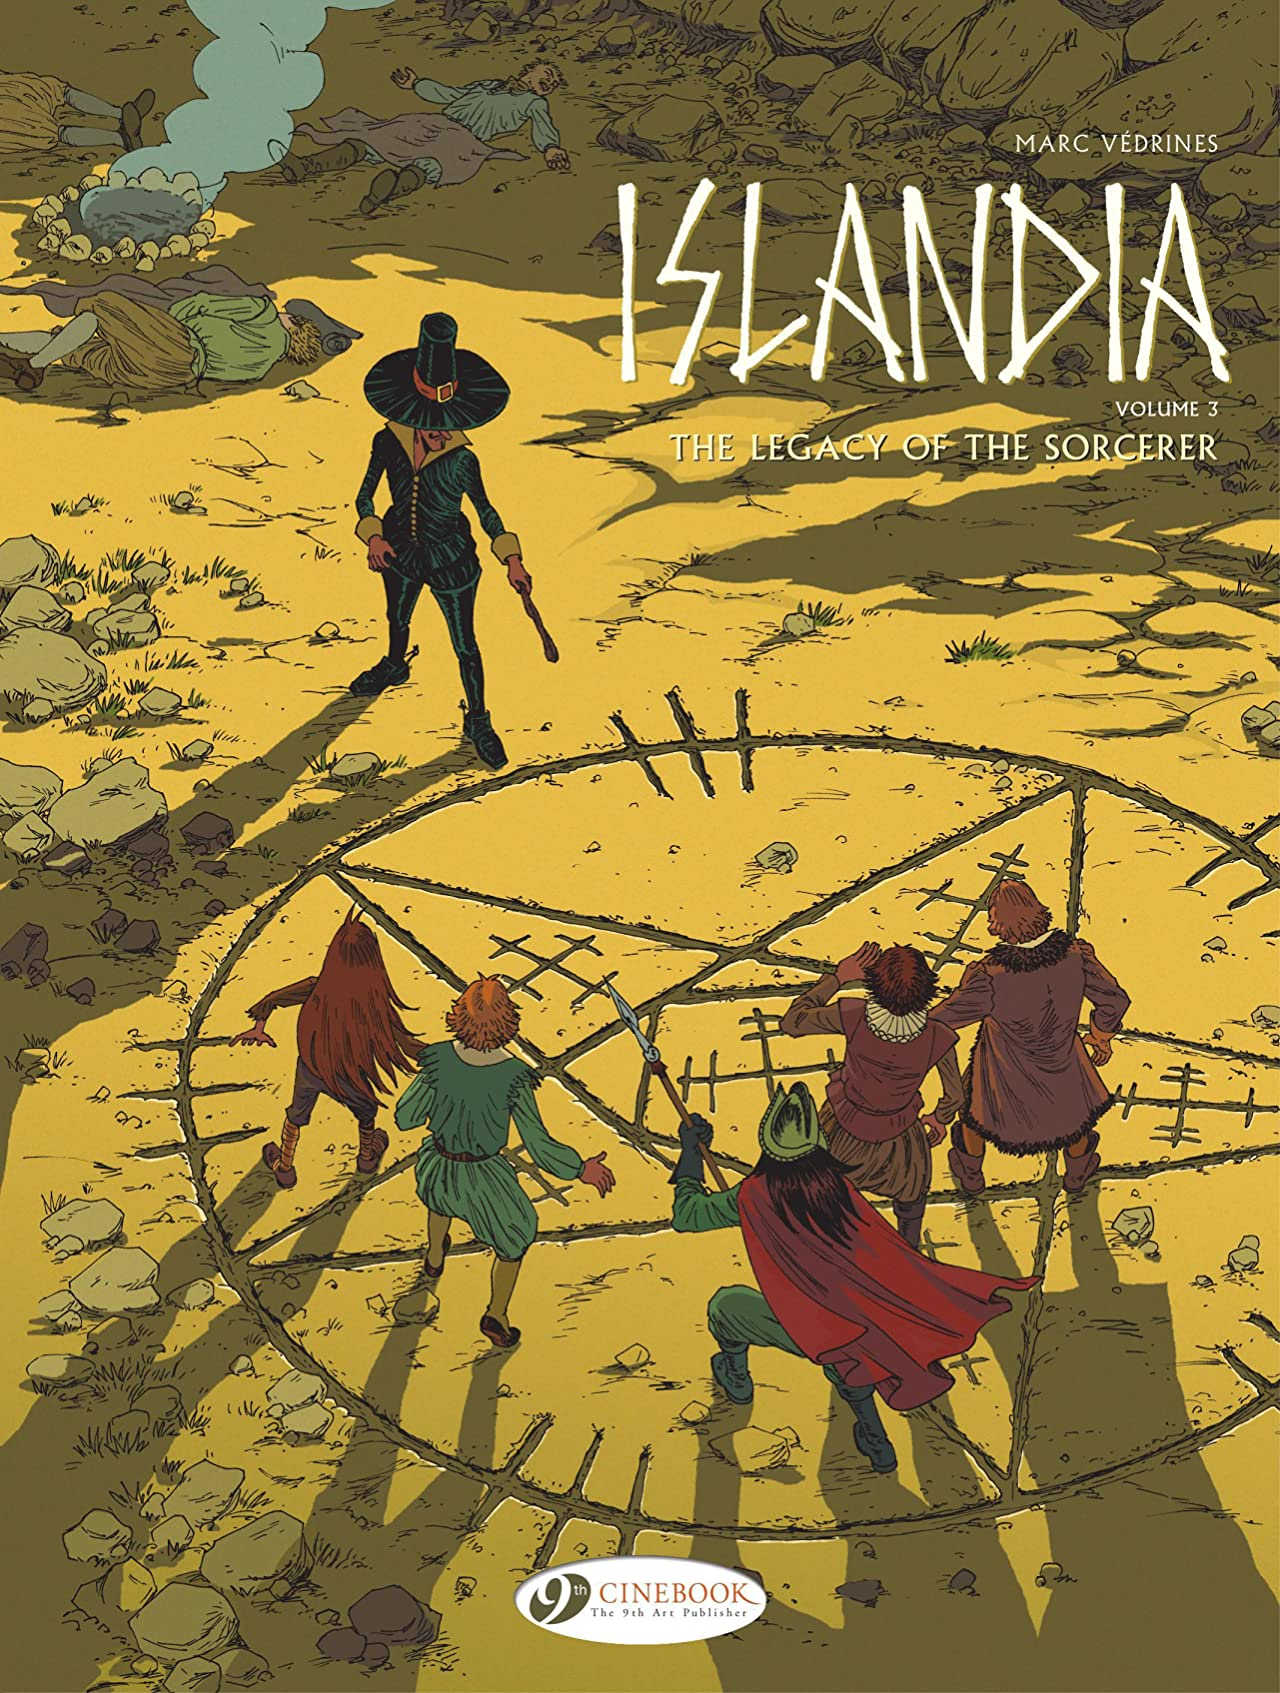 Islandia Tome 3: The Legacy of the Sorcerer